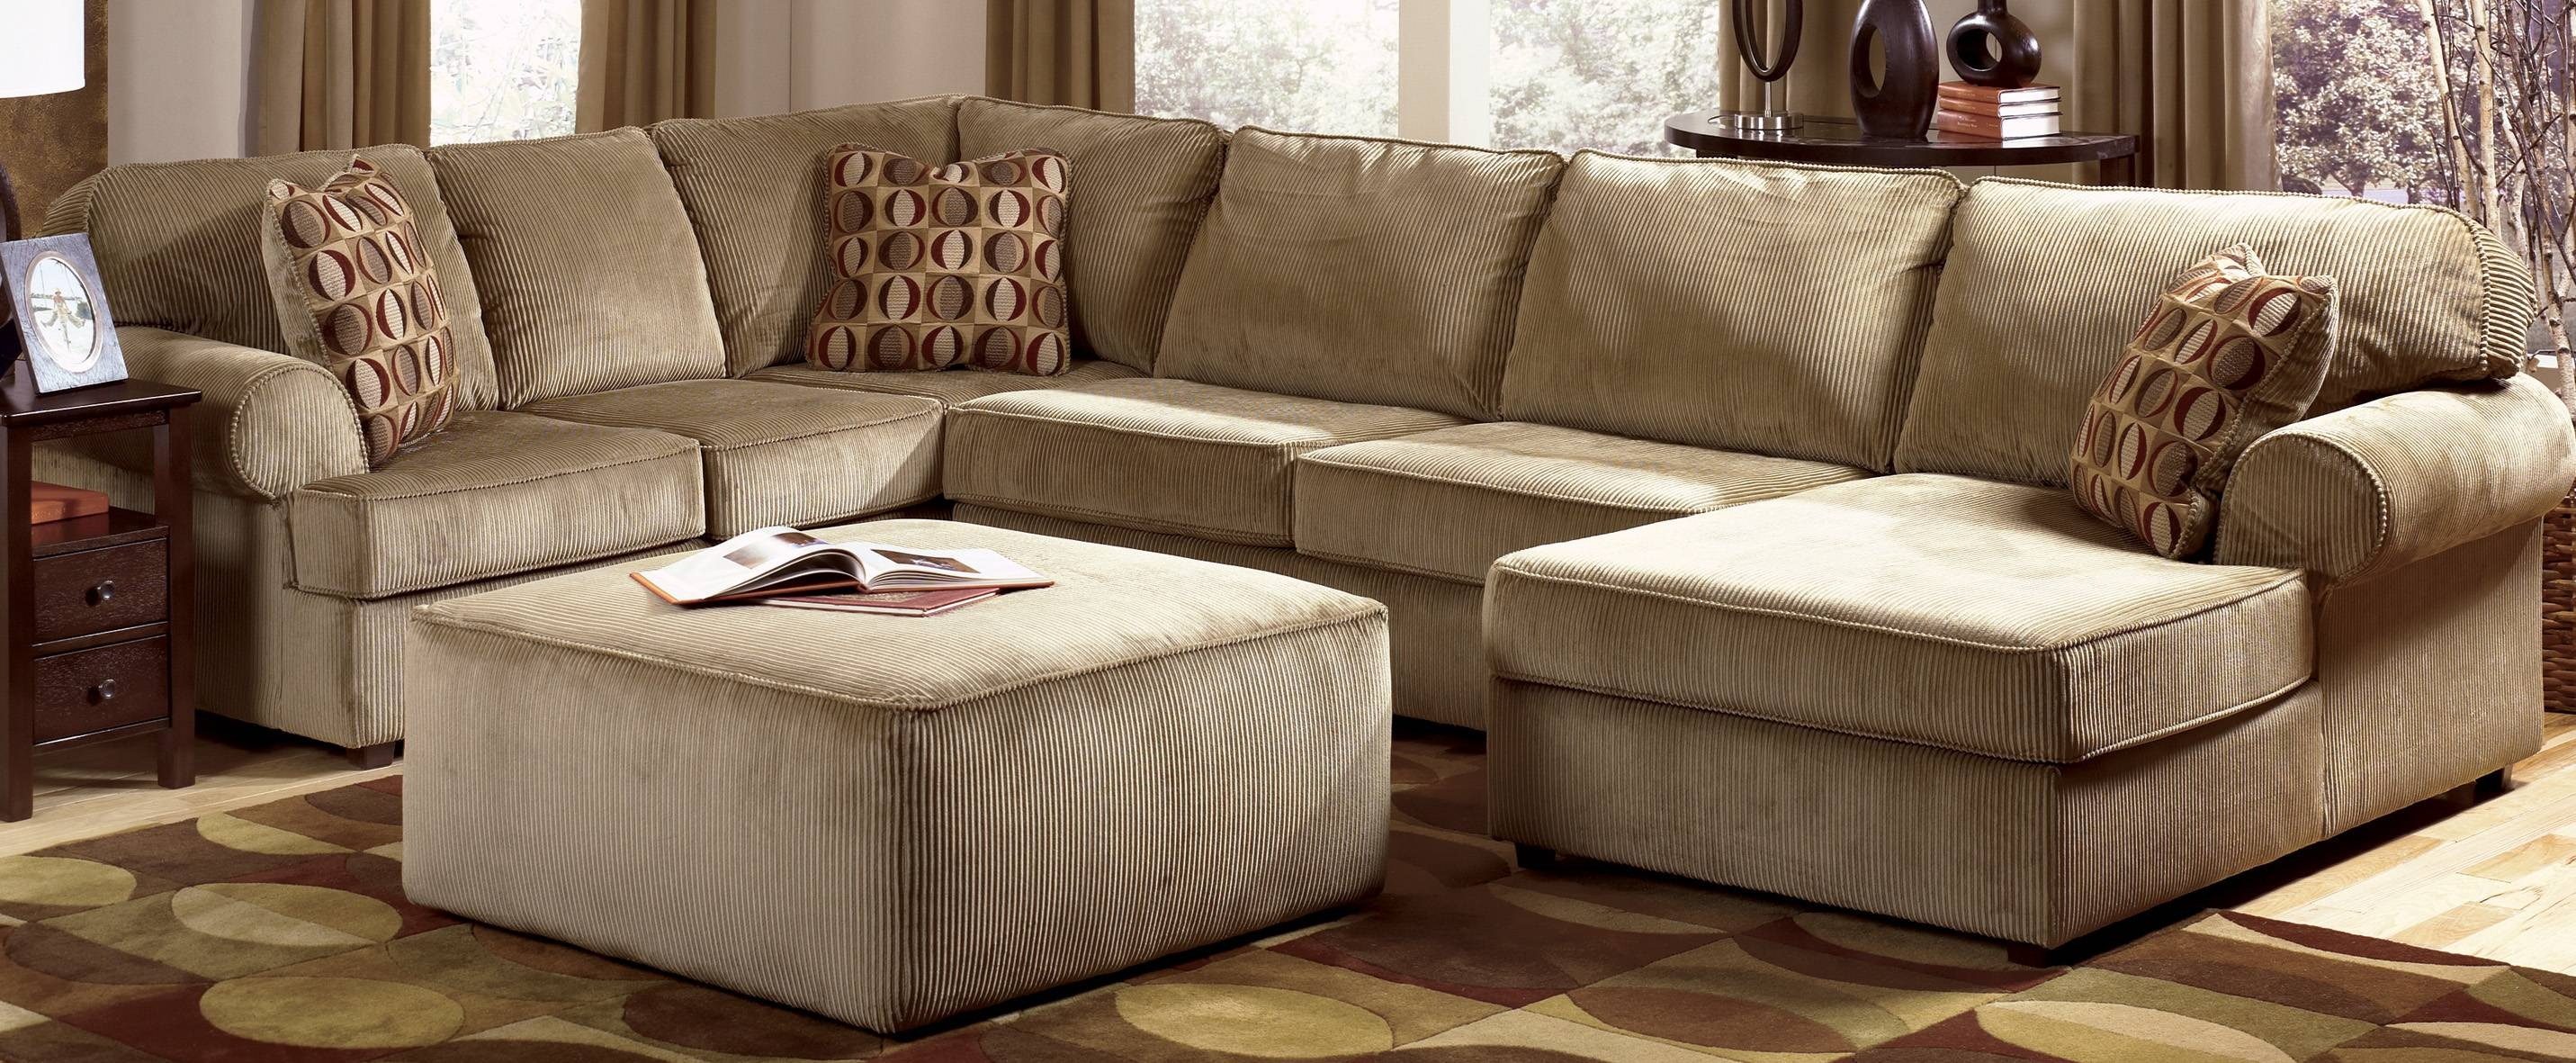 Living Room: Affordable Leather Sectionals | Affordable Sectional with regard to Discounted Sectional Sofa (Image 23 of 30)